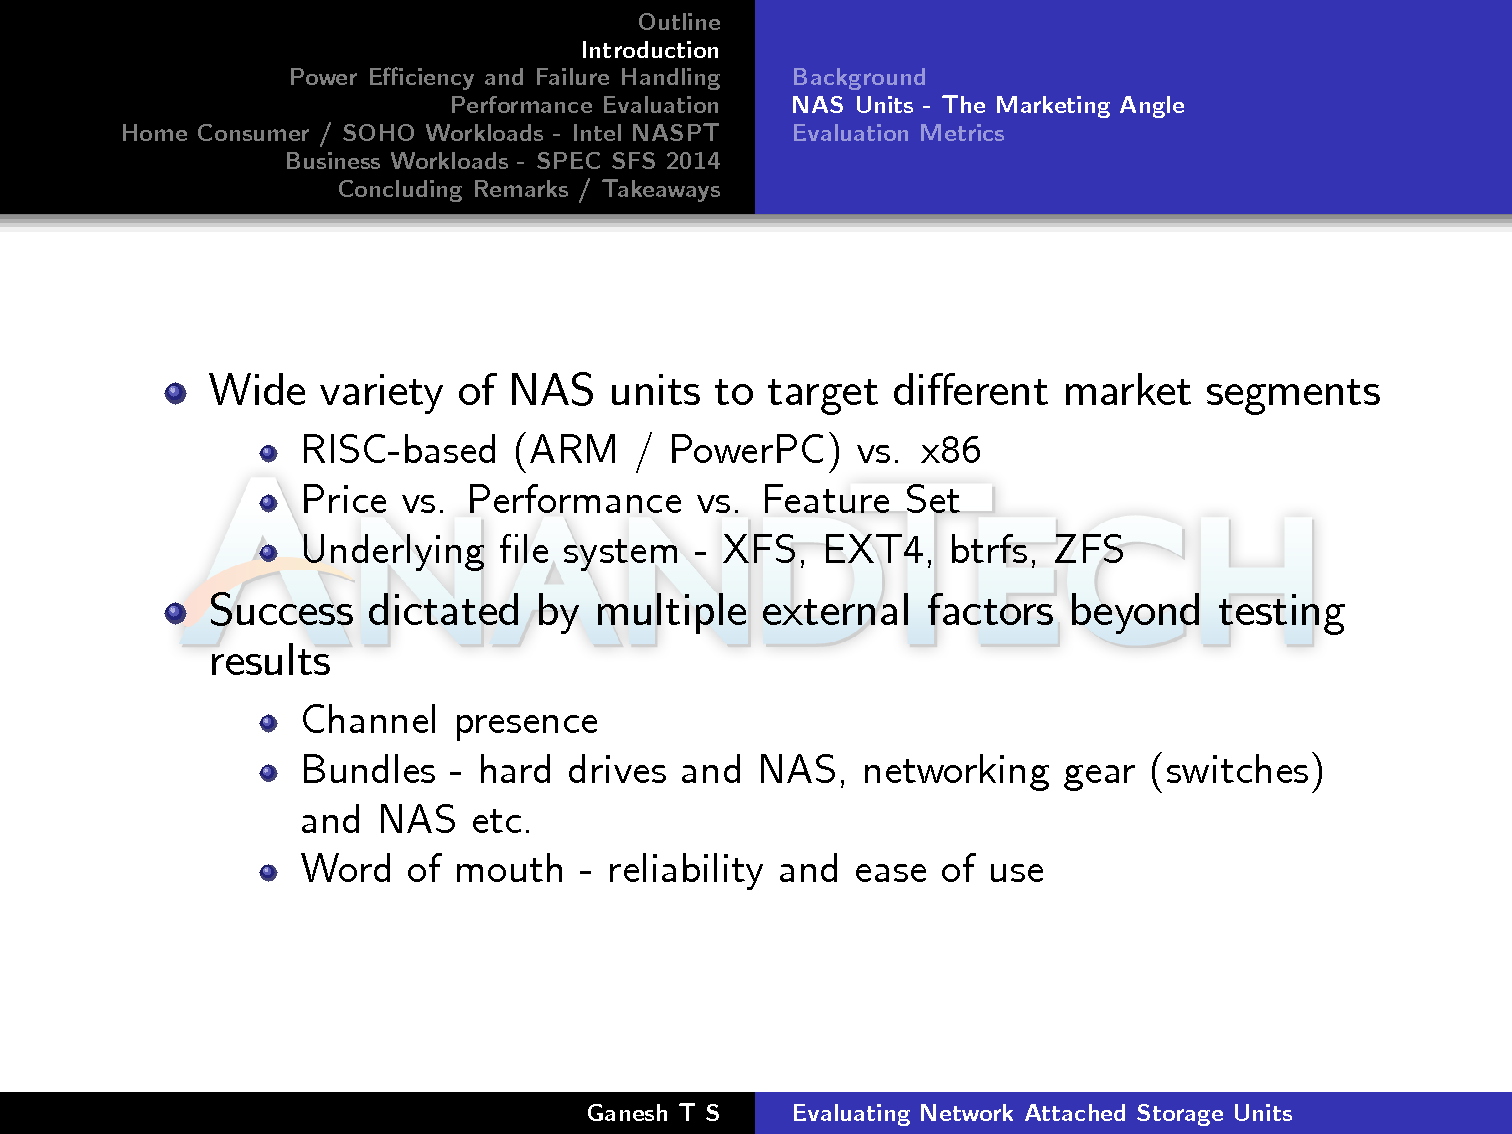 behind the scenes evaluating nas units solution based benchmarks evaluation metrics can fall under two categories subjective and objective the former refers to aspects such as the management web ui